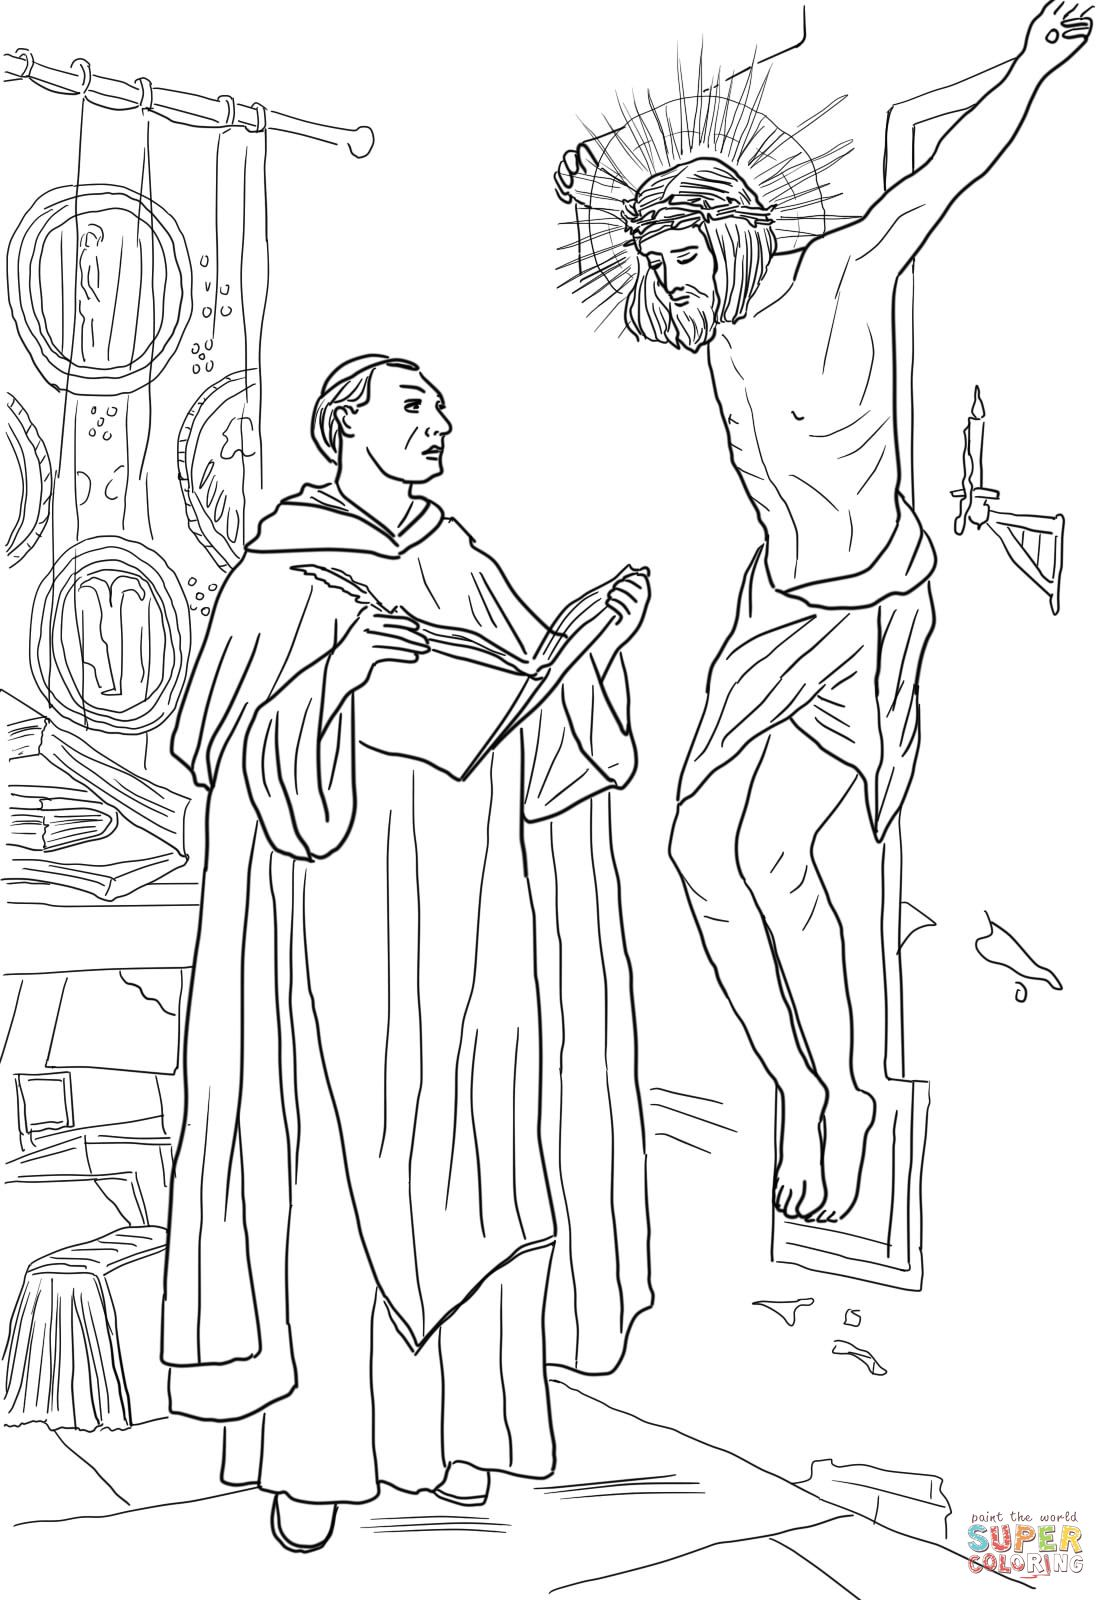 St Thomas Aquinas coloring page | Catholic coloring sheets ...